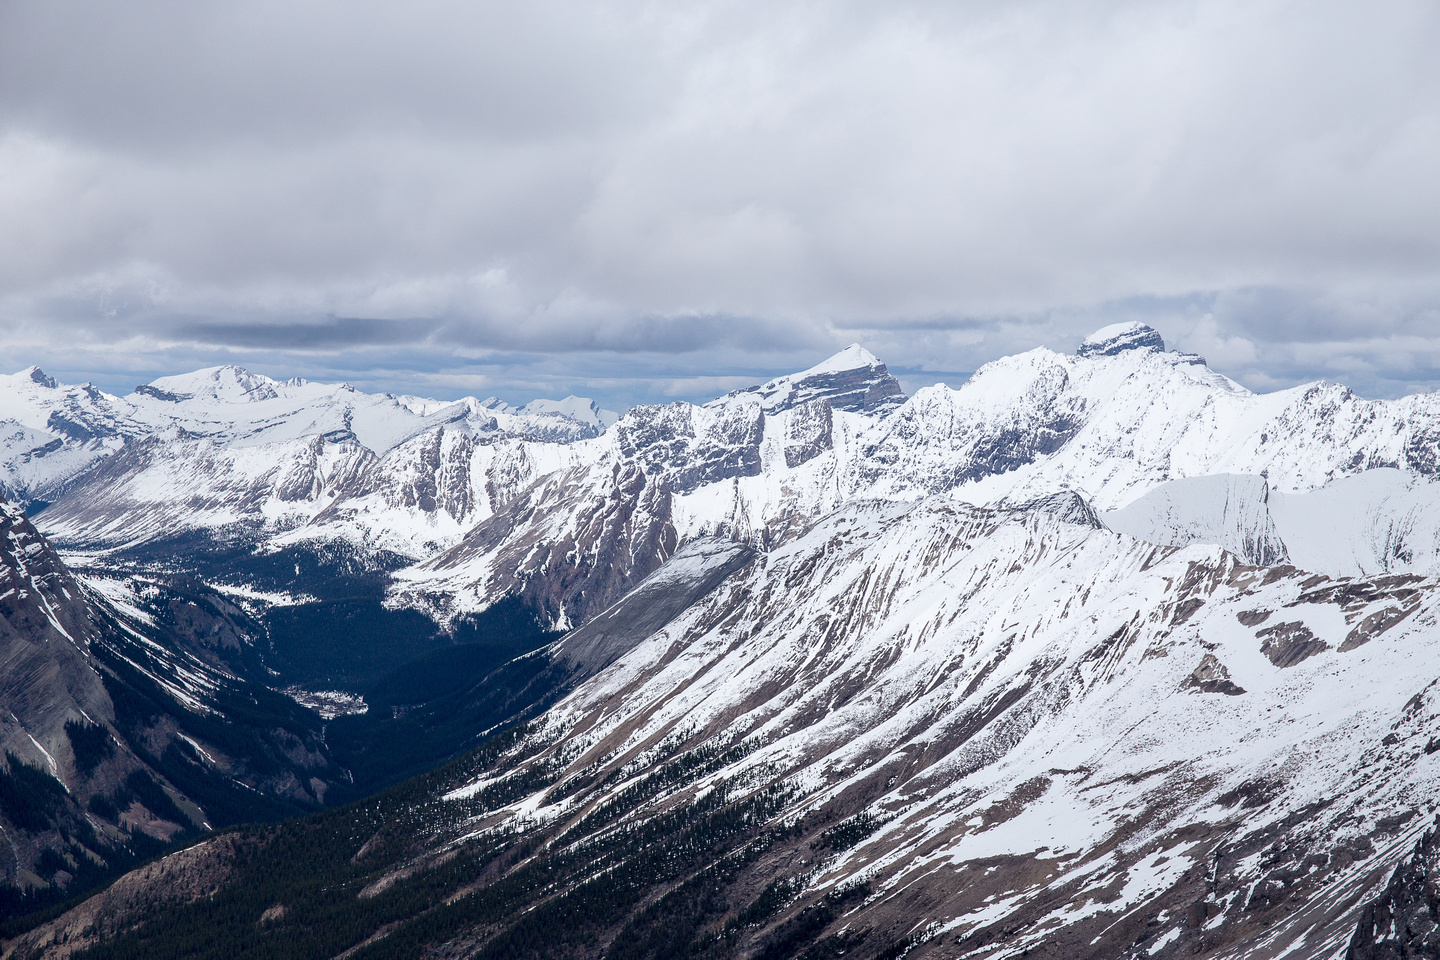 Looking into the Skoki area, Douglas and St Bride on the right.